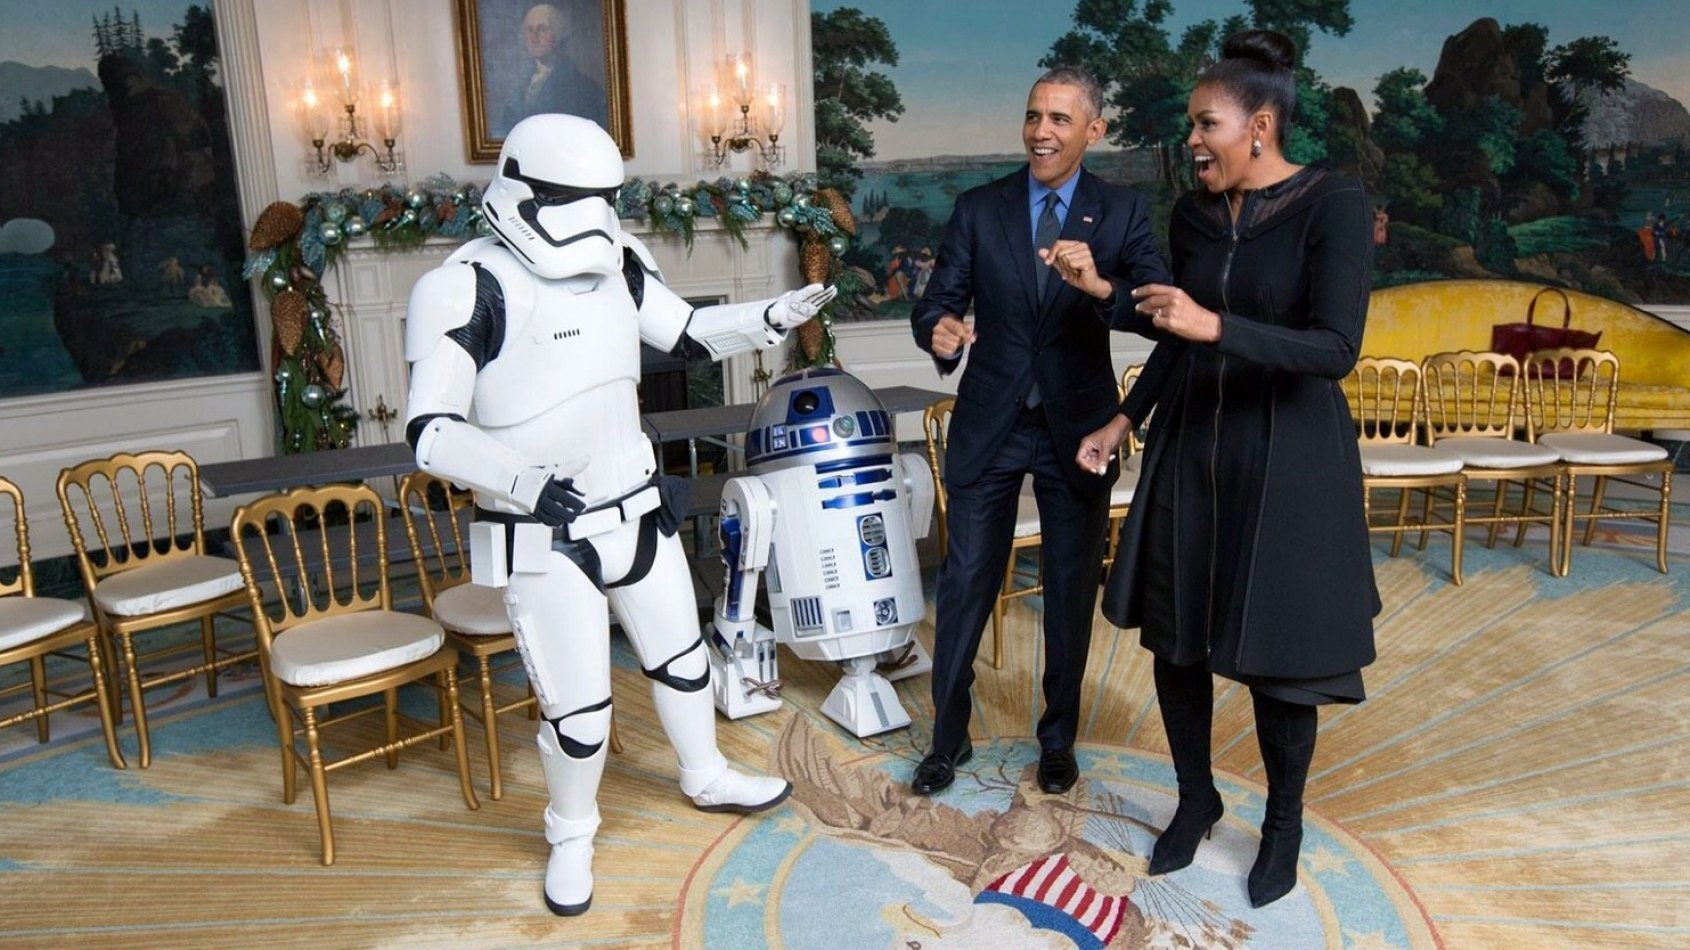 Les Obama ont aussi f�t� le May the 4th !